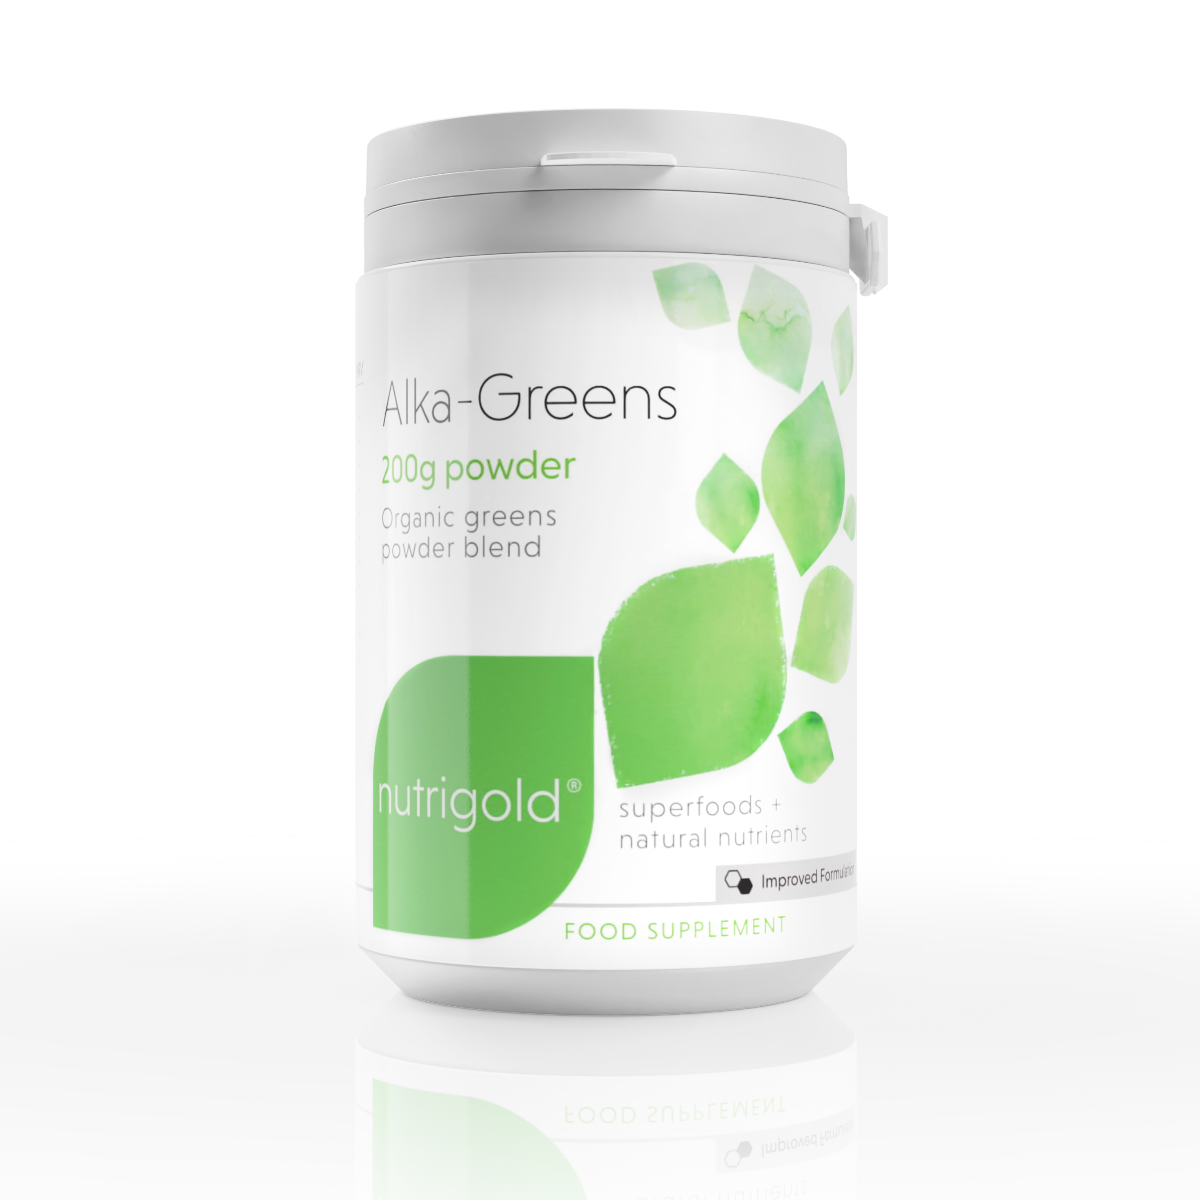 Read more about Alka-Greens